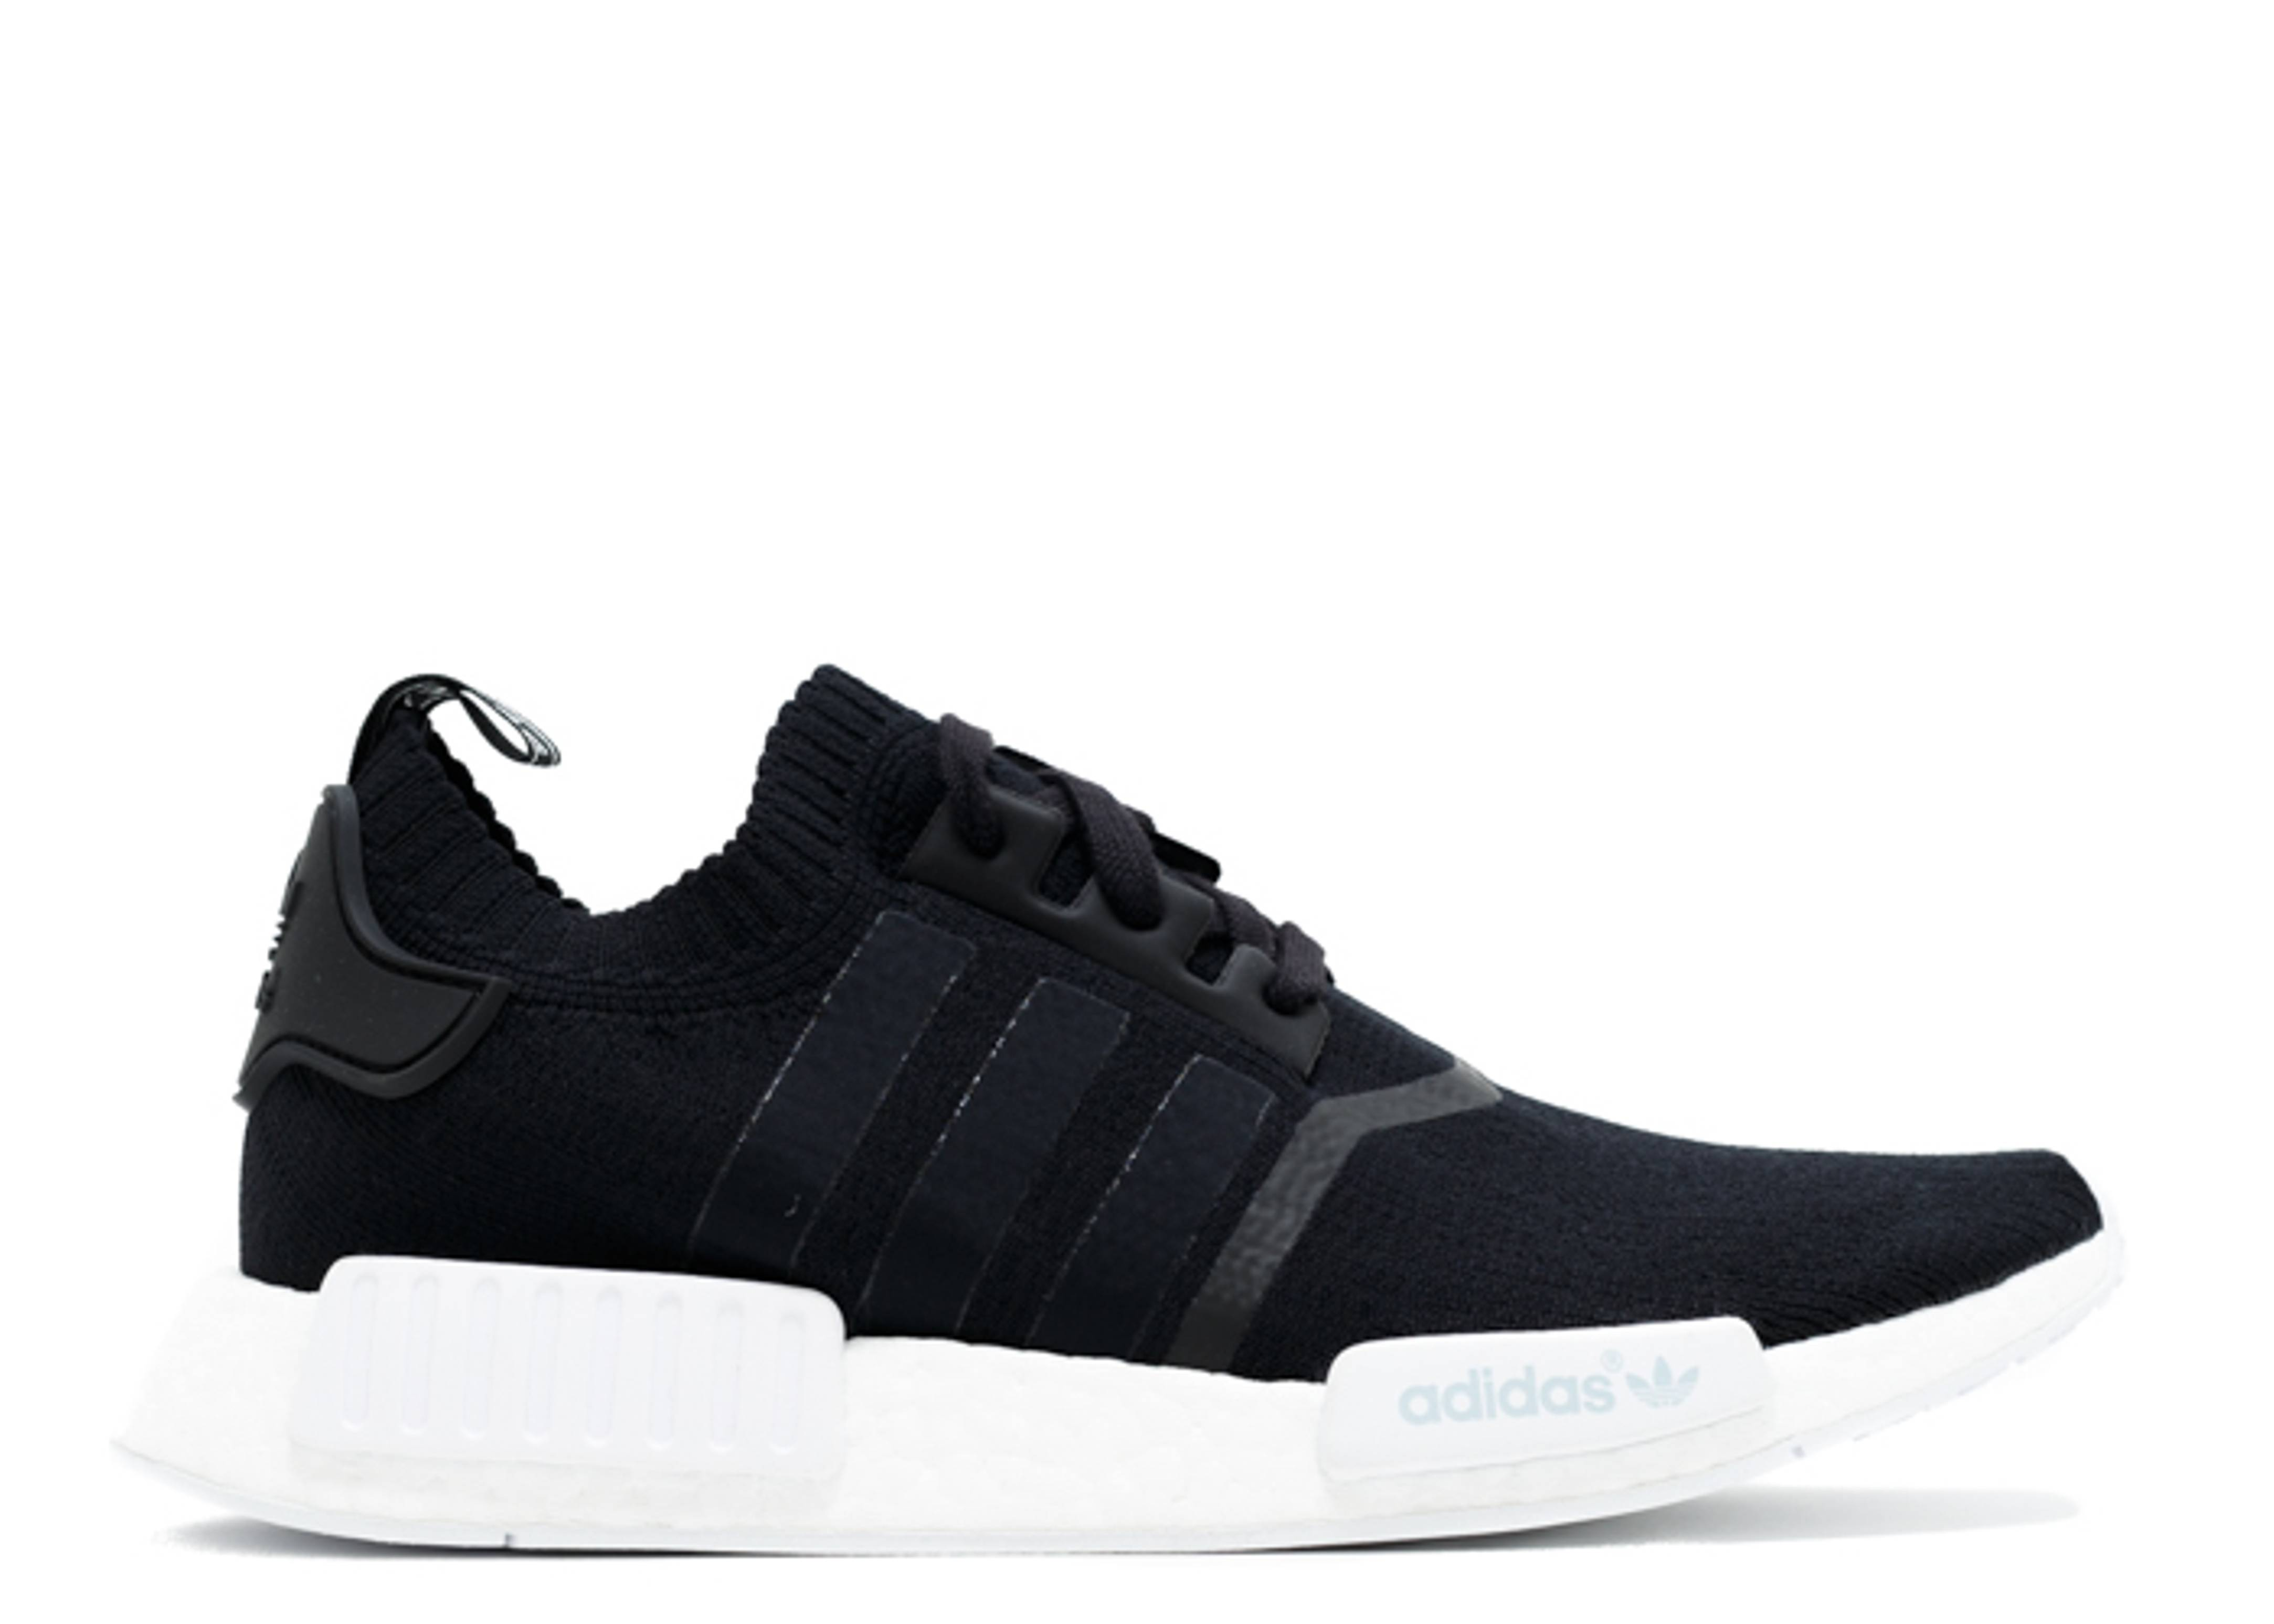 Where to Cop the adidas NMD R1 Primeknit Tri Color in 'Core Black